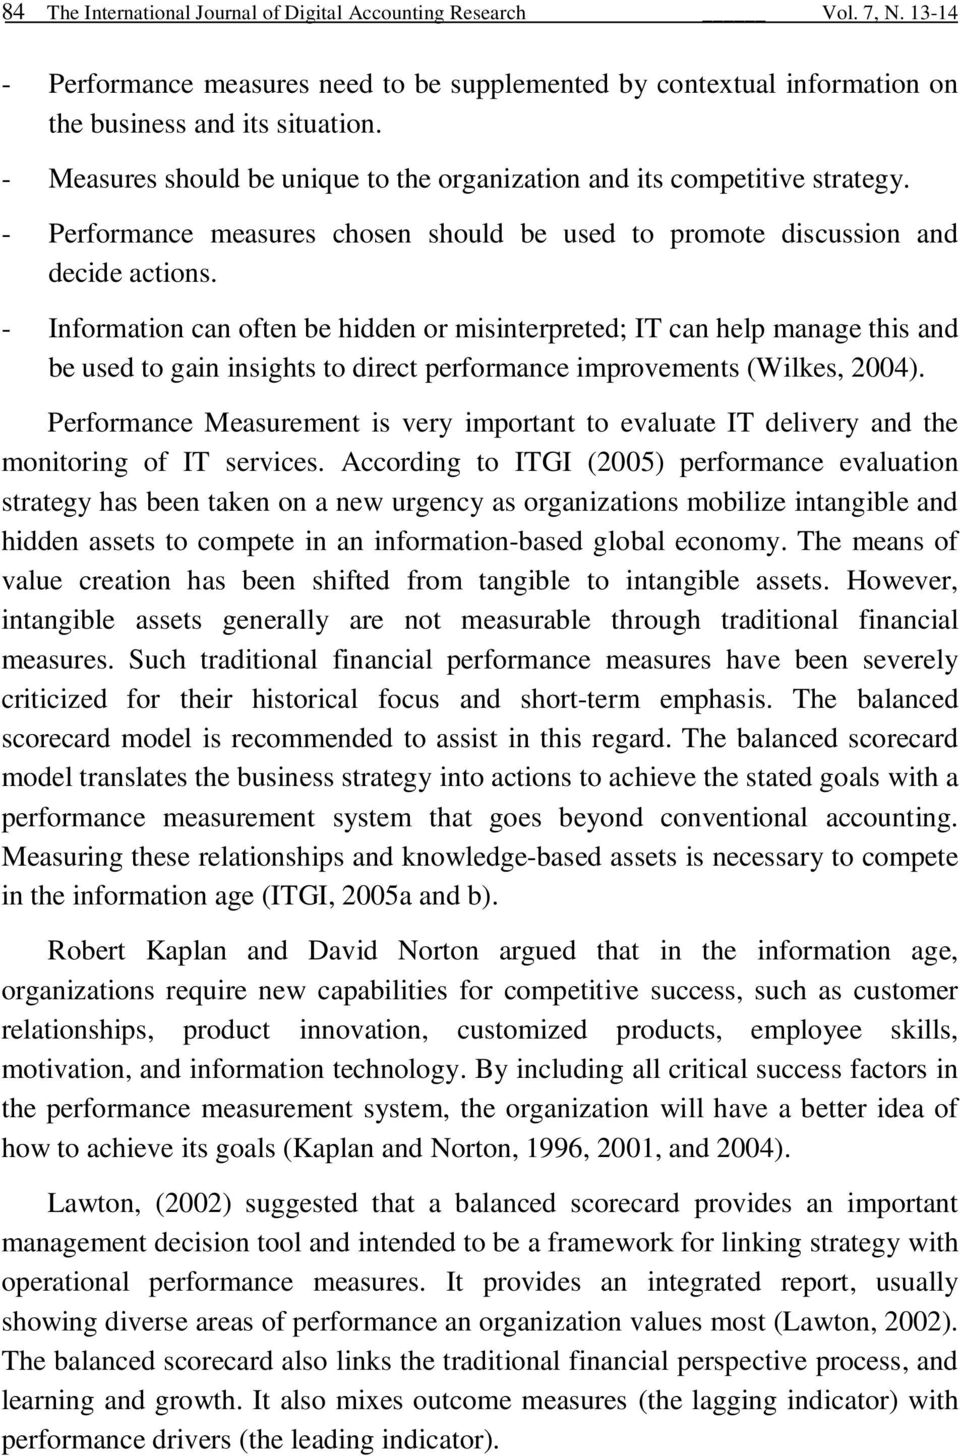 - Information can often be hidden or misinterpreted; IT can help manage this and be used to gain insights to direct performance improvements (Wilkes, 2004).